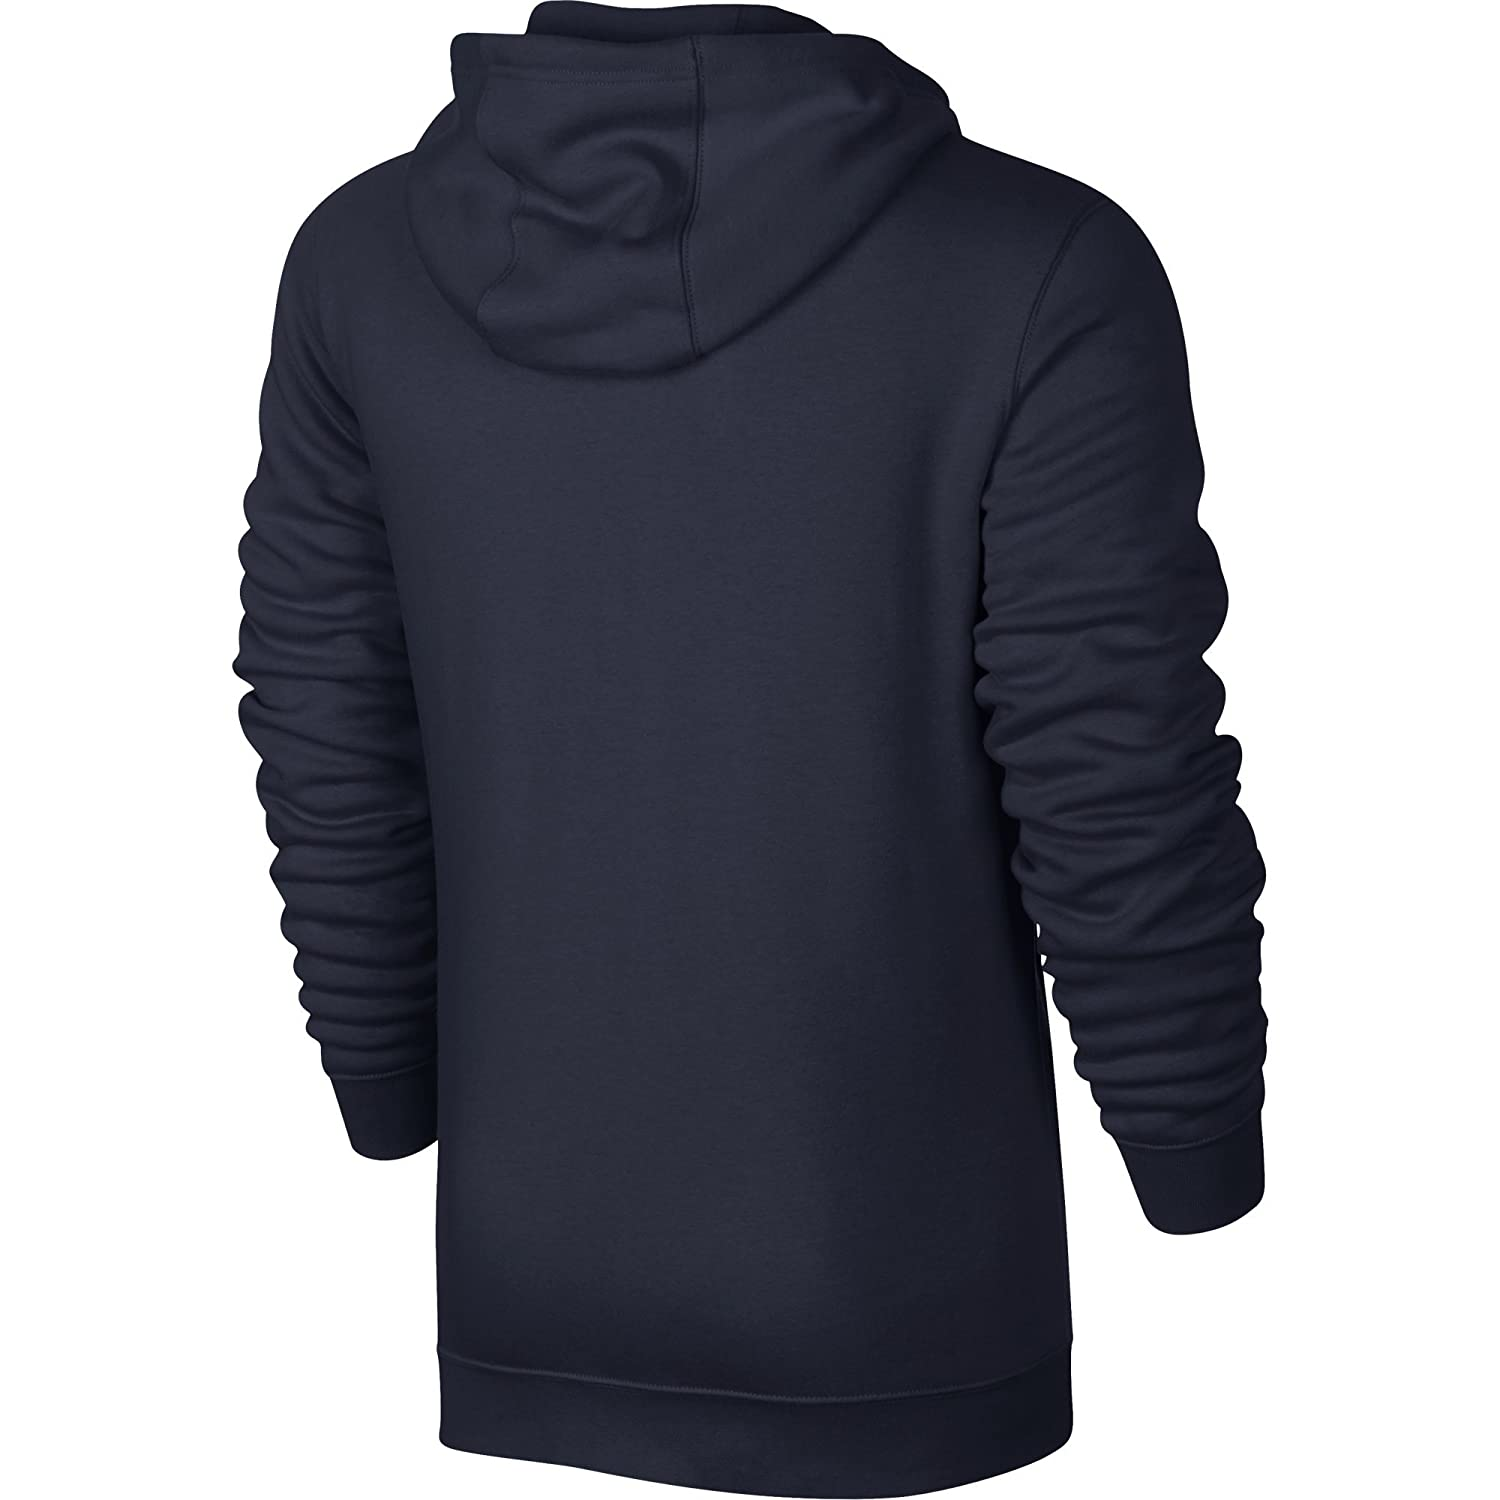 the best attitude 58d2c 5c5f0 Amazon.com NIKE Sportswear Mens Full Zip Club Hoodie Sports  Outdoors